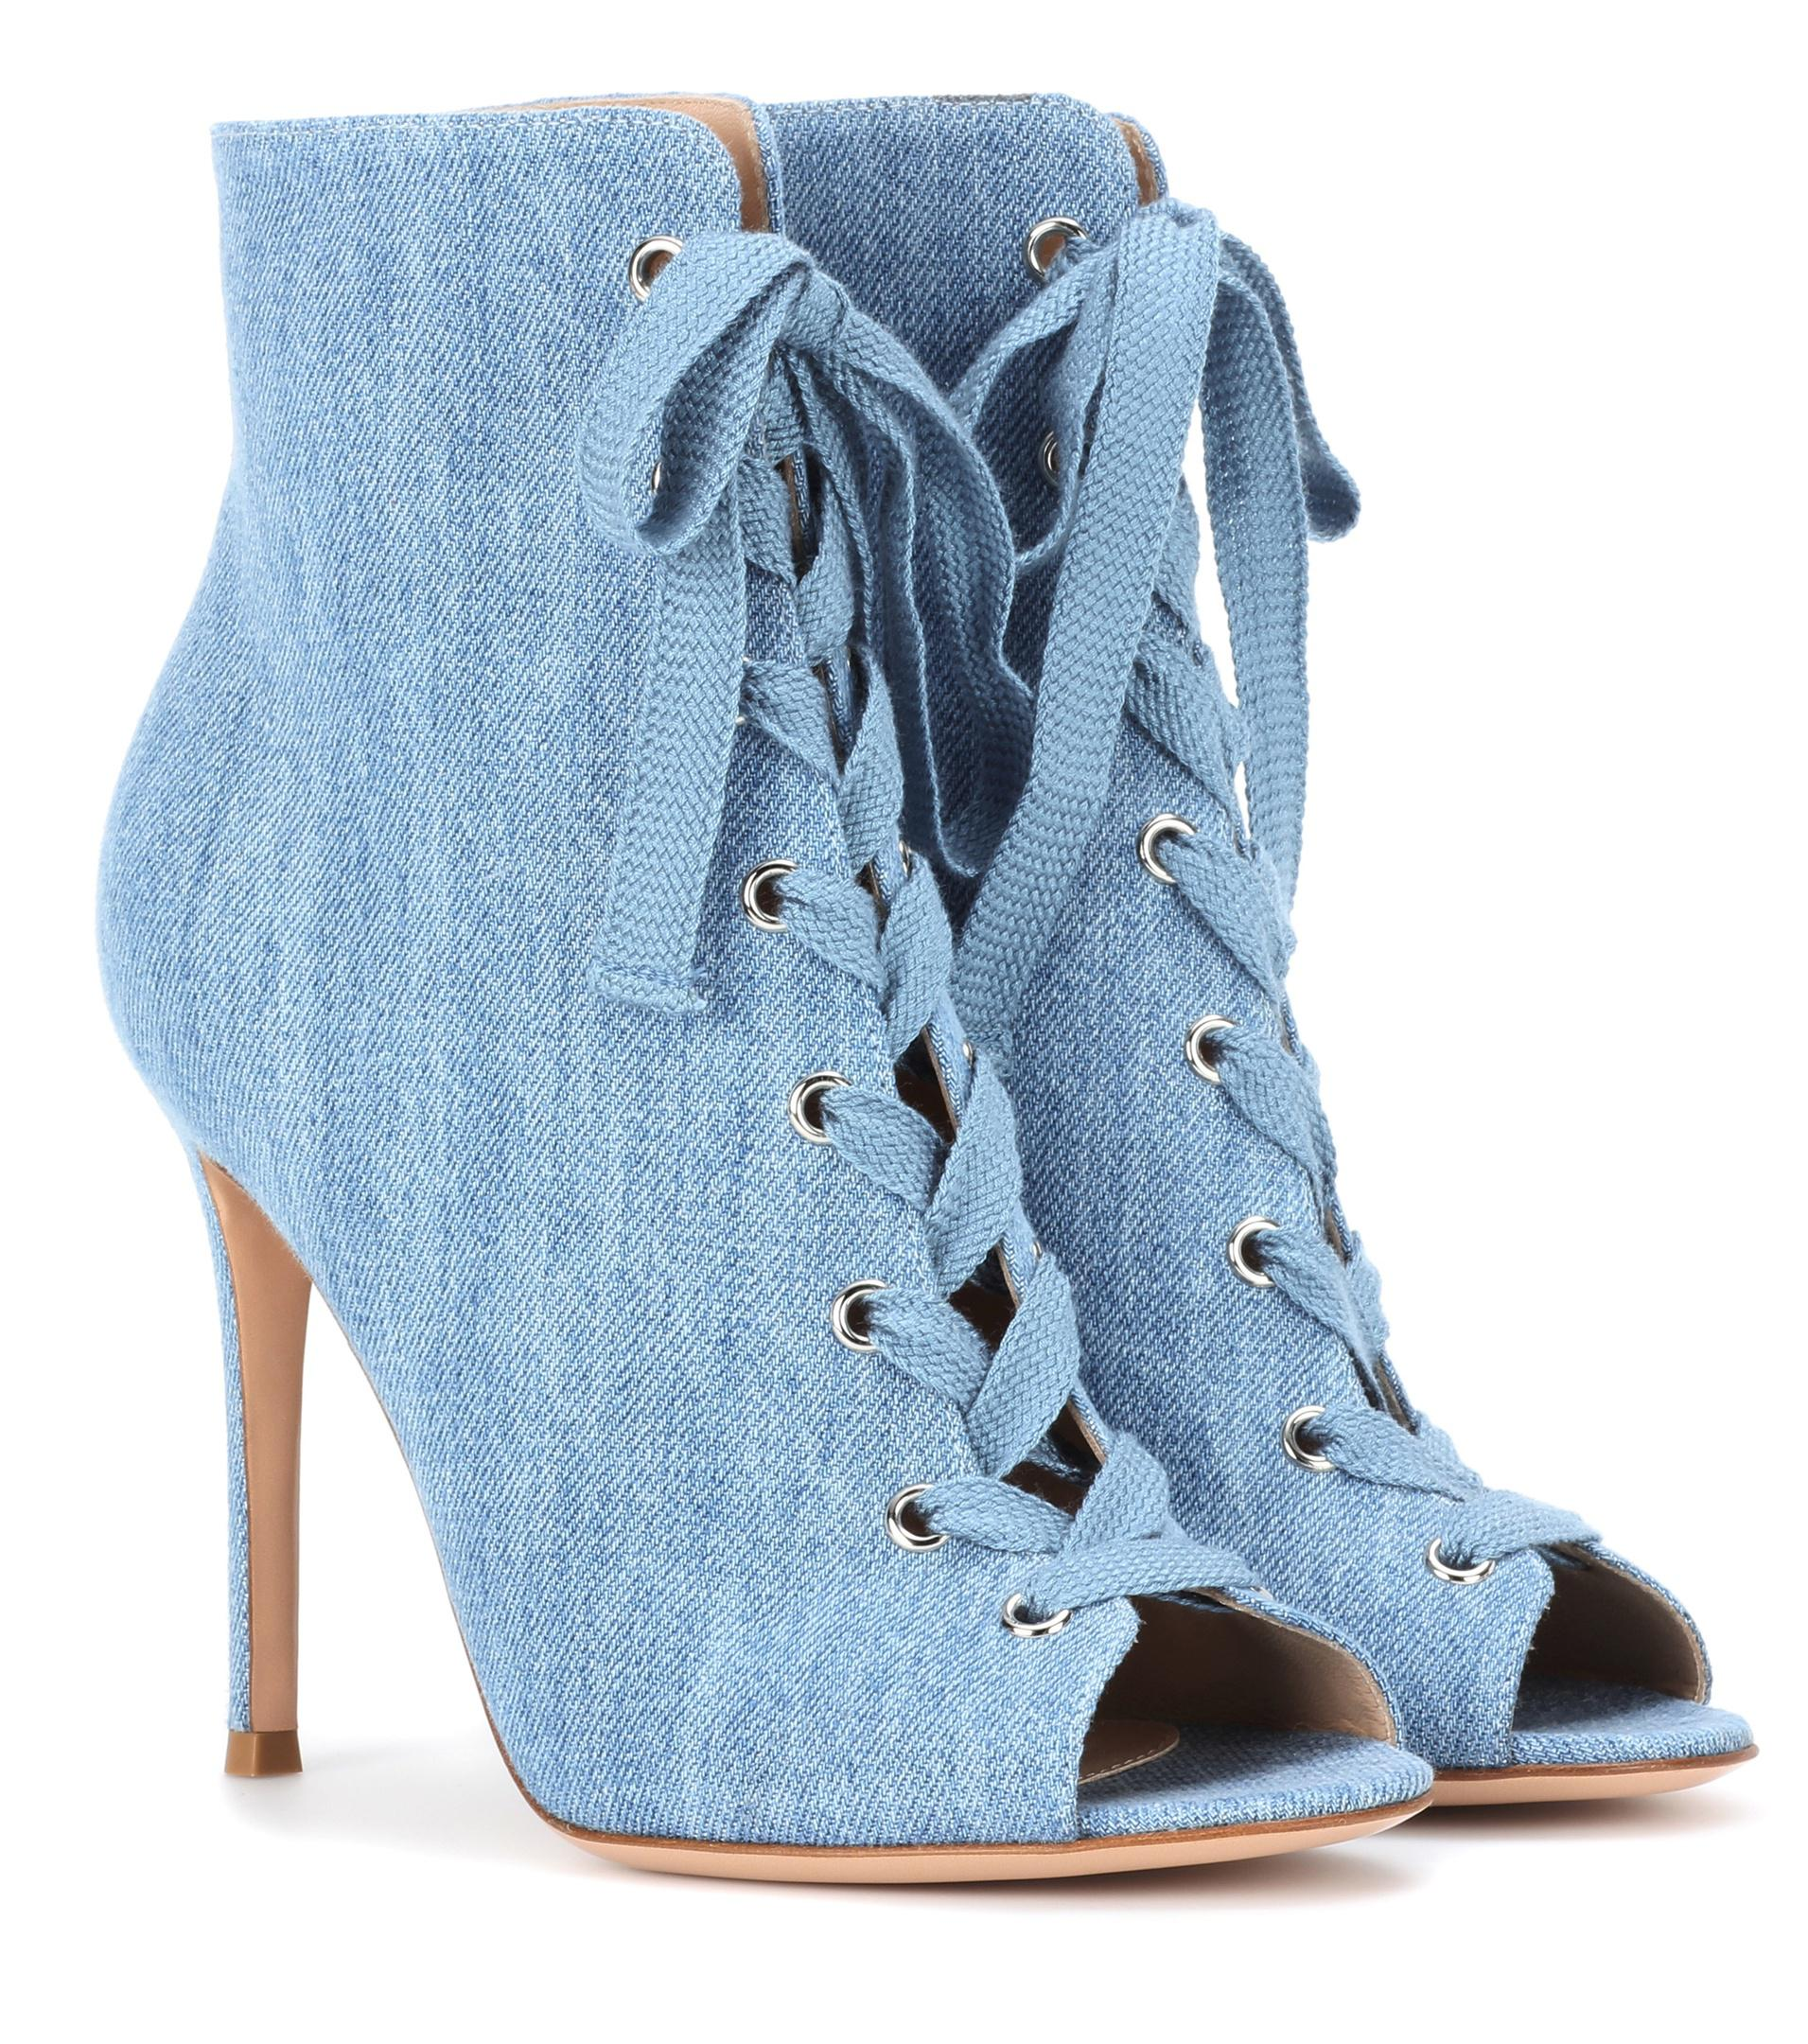 buy cheap nicekicks Gianvito Rossi Peep-Toe Denim Ankle Boots clearance store online cheap sale best place WgMvHY